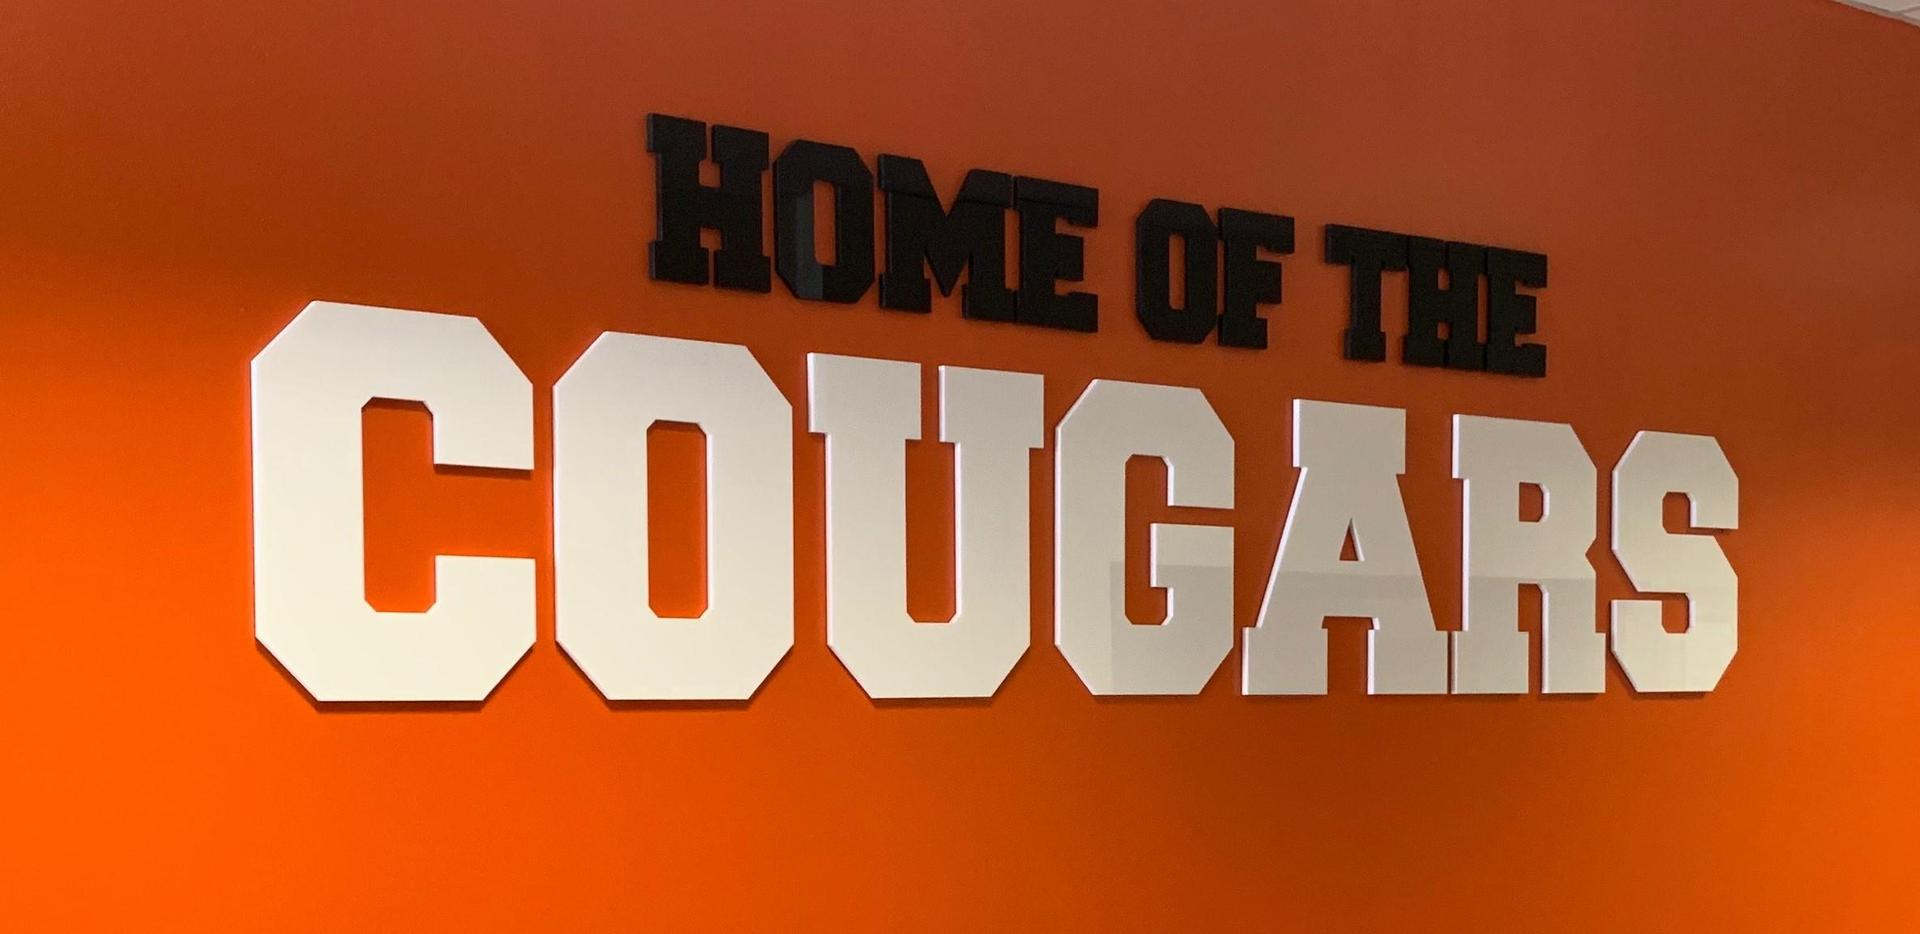 home of cougars sign